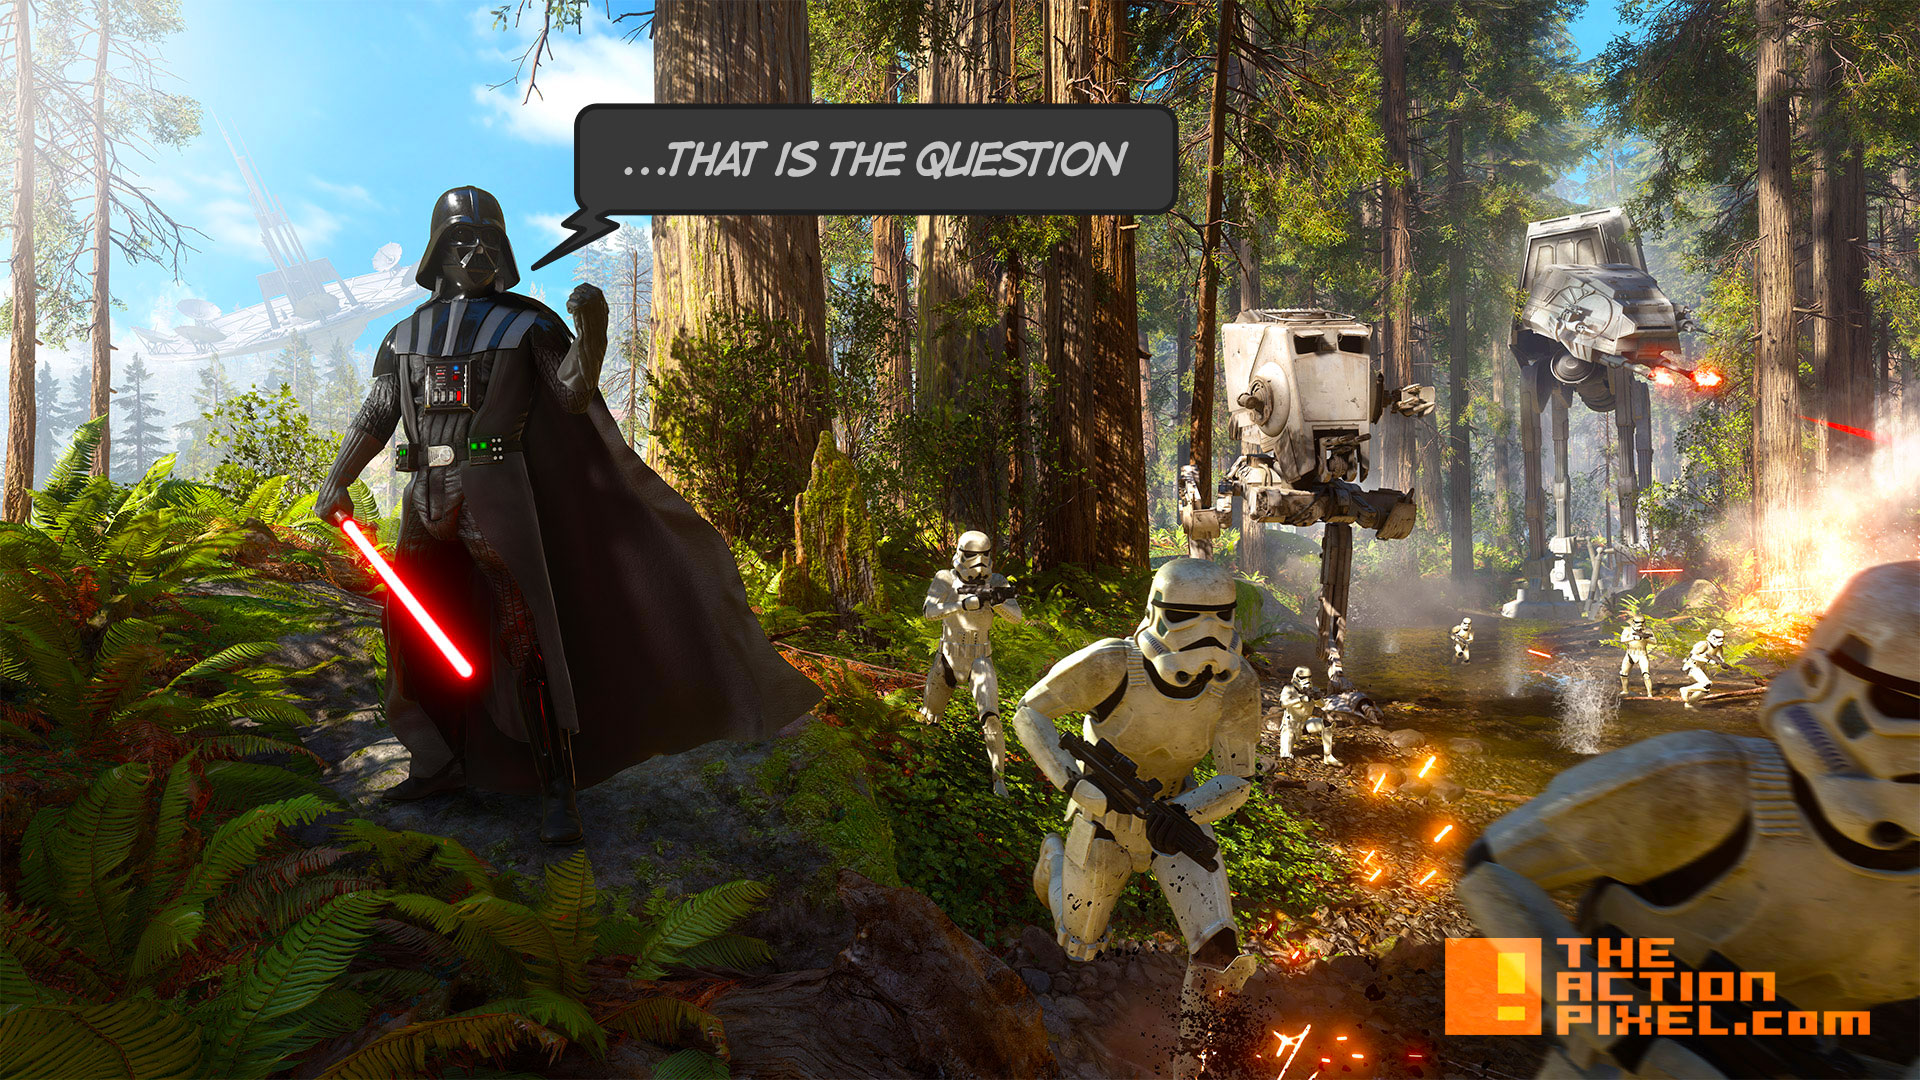 star wars battlefront. ea. the action pixel. @theactionpixel. dice games.